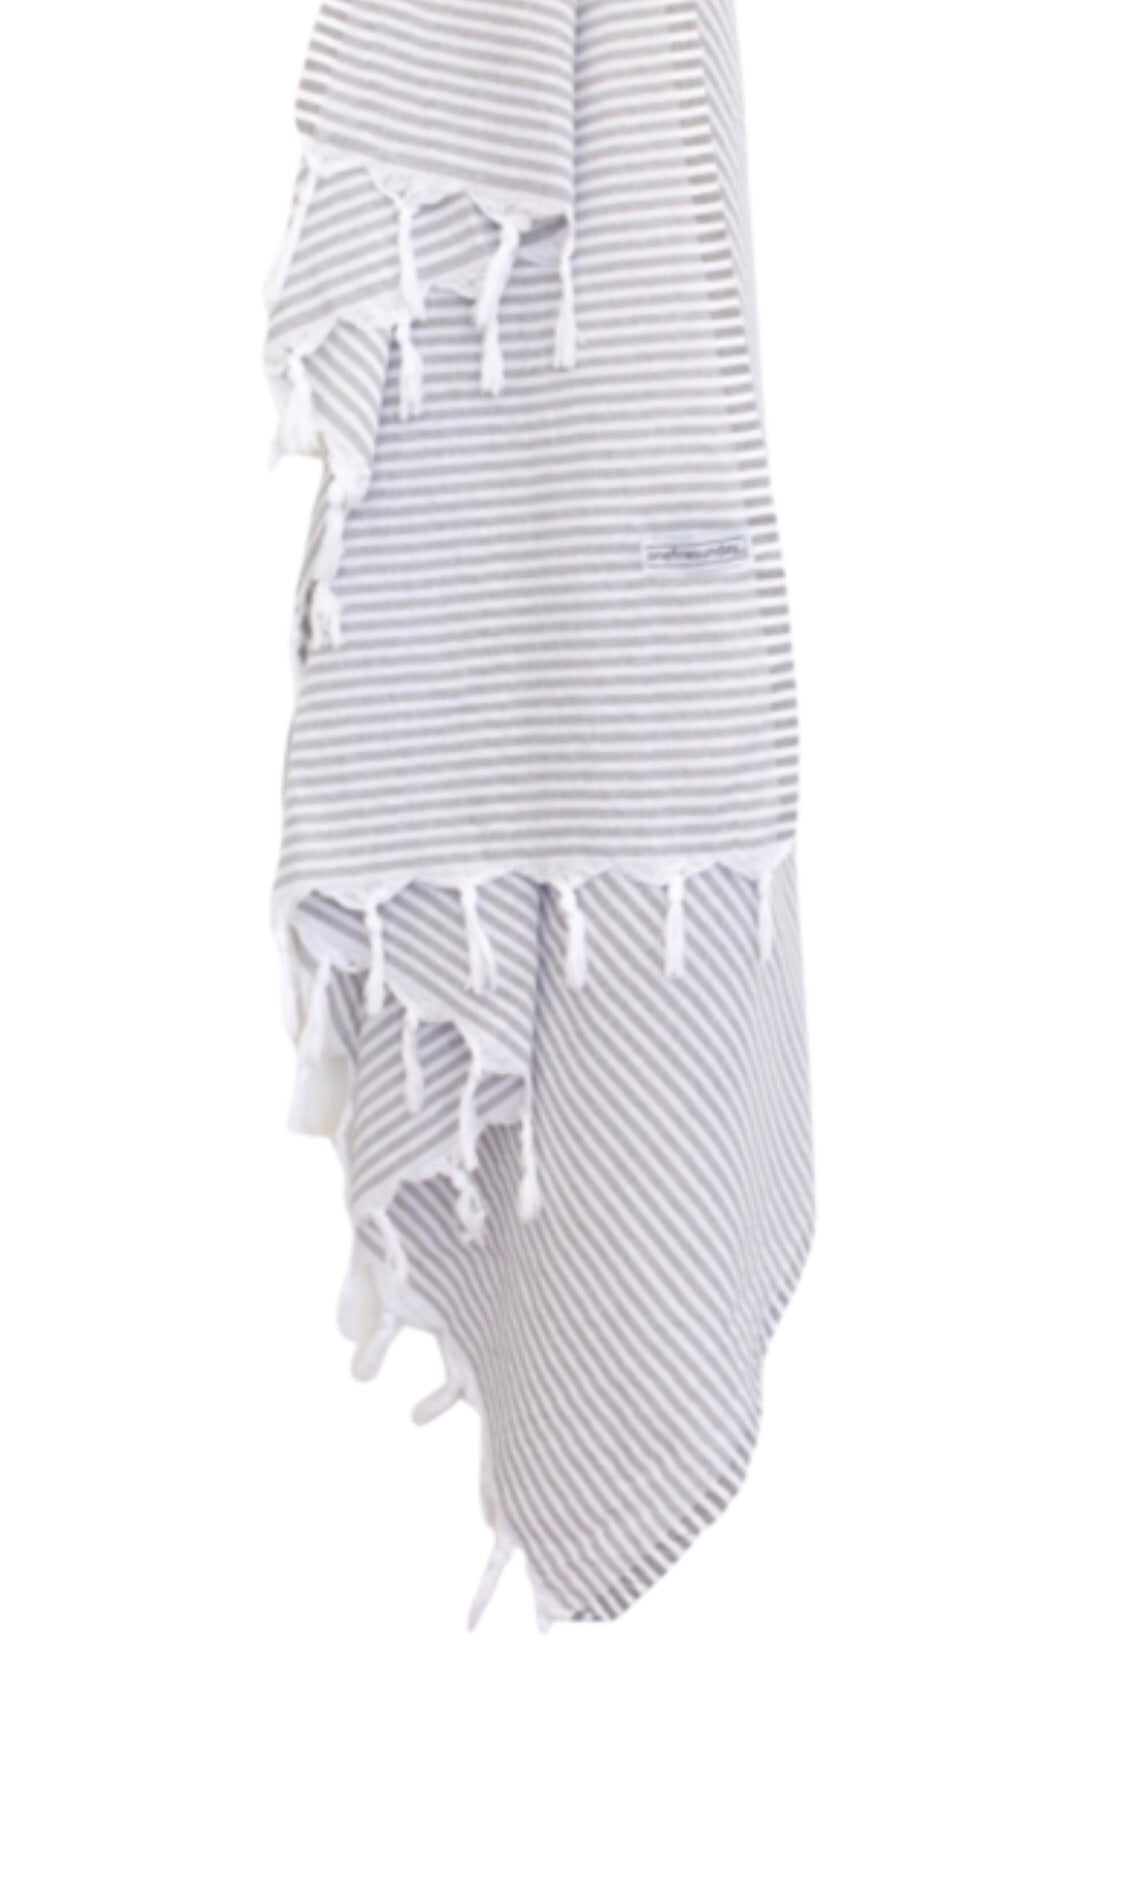 Classic Turkish Towel Thin Striped - Light Grey-onefinesunday co